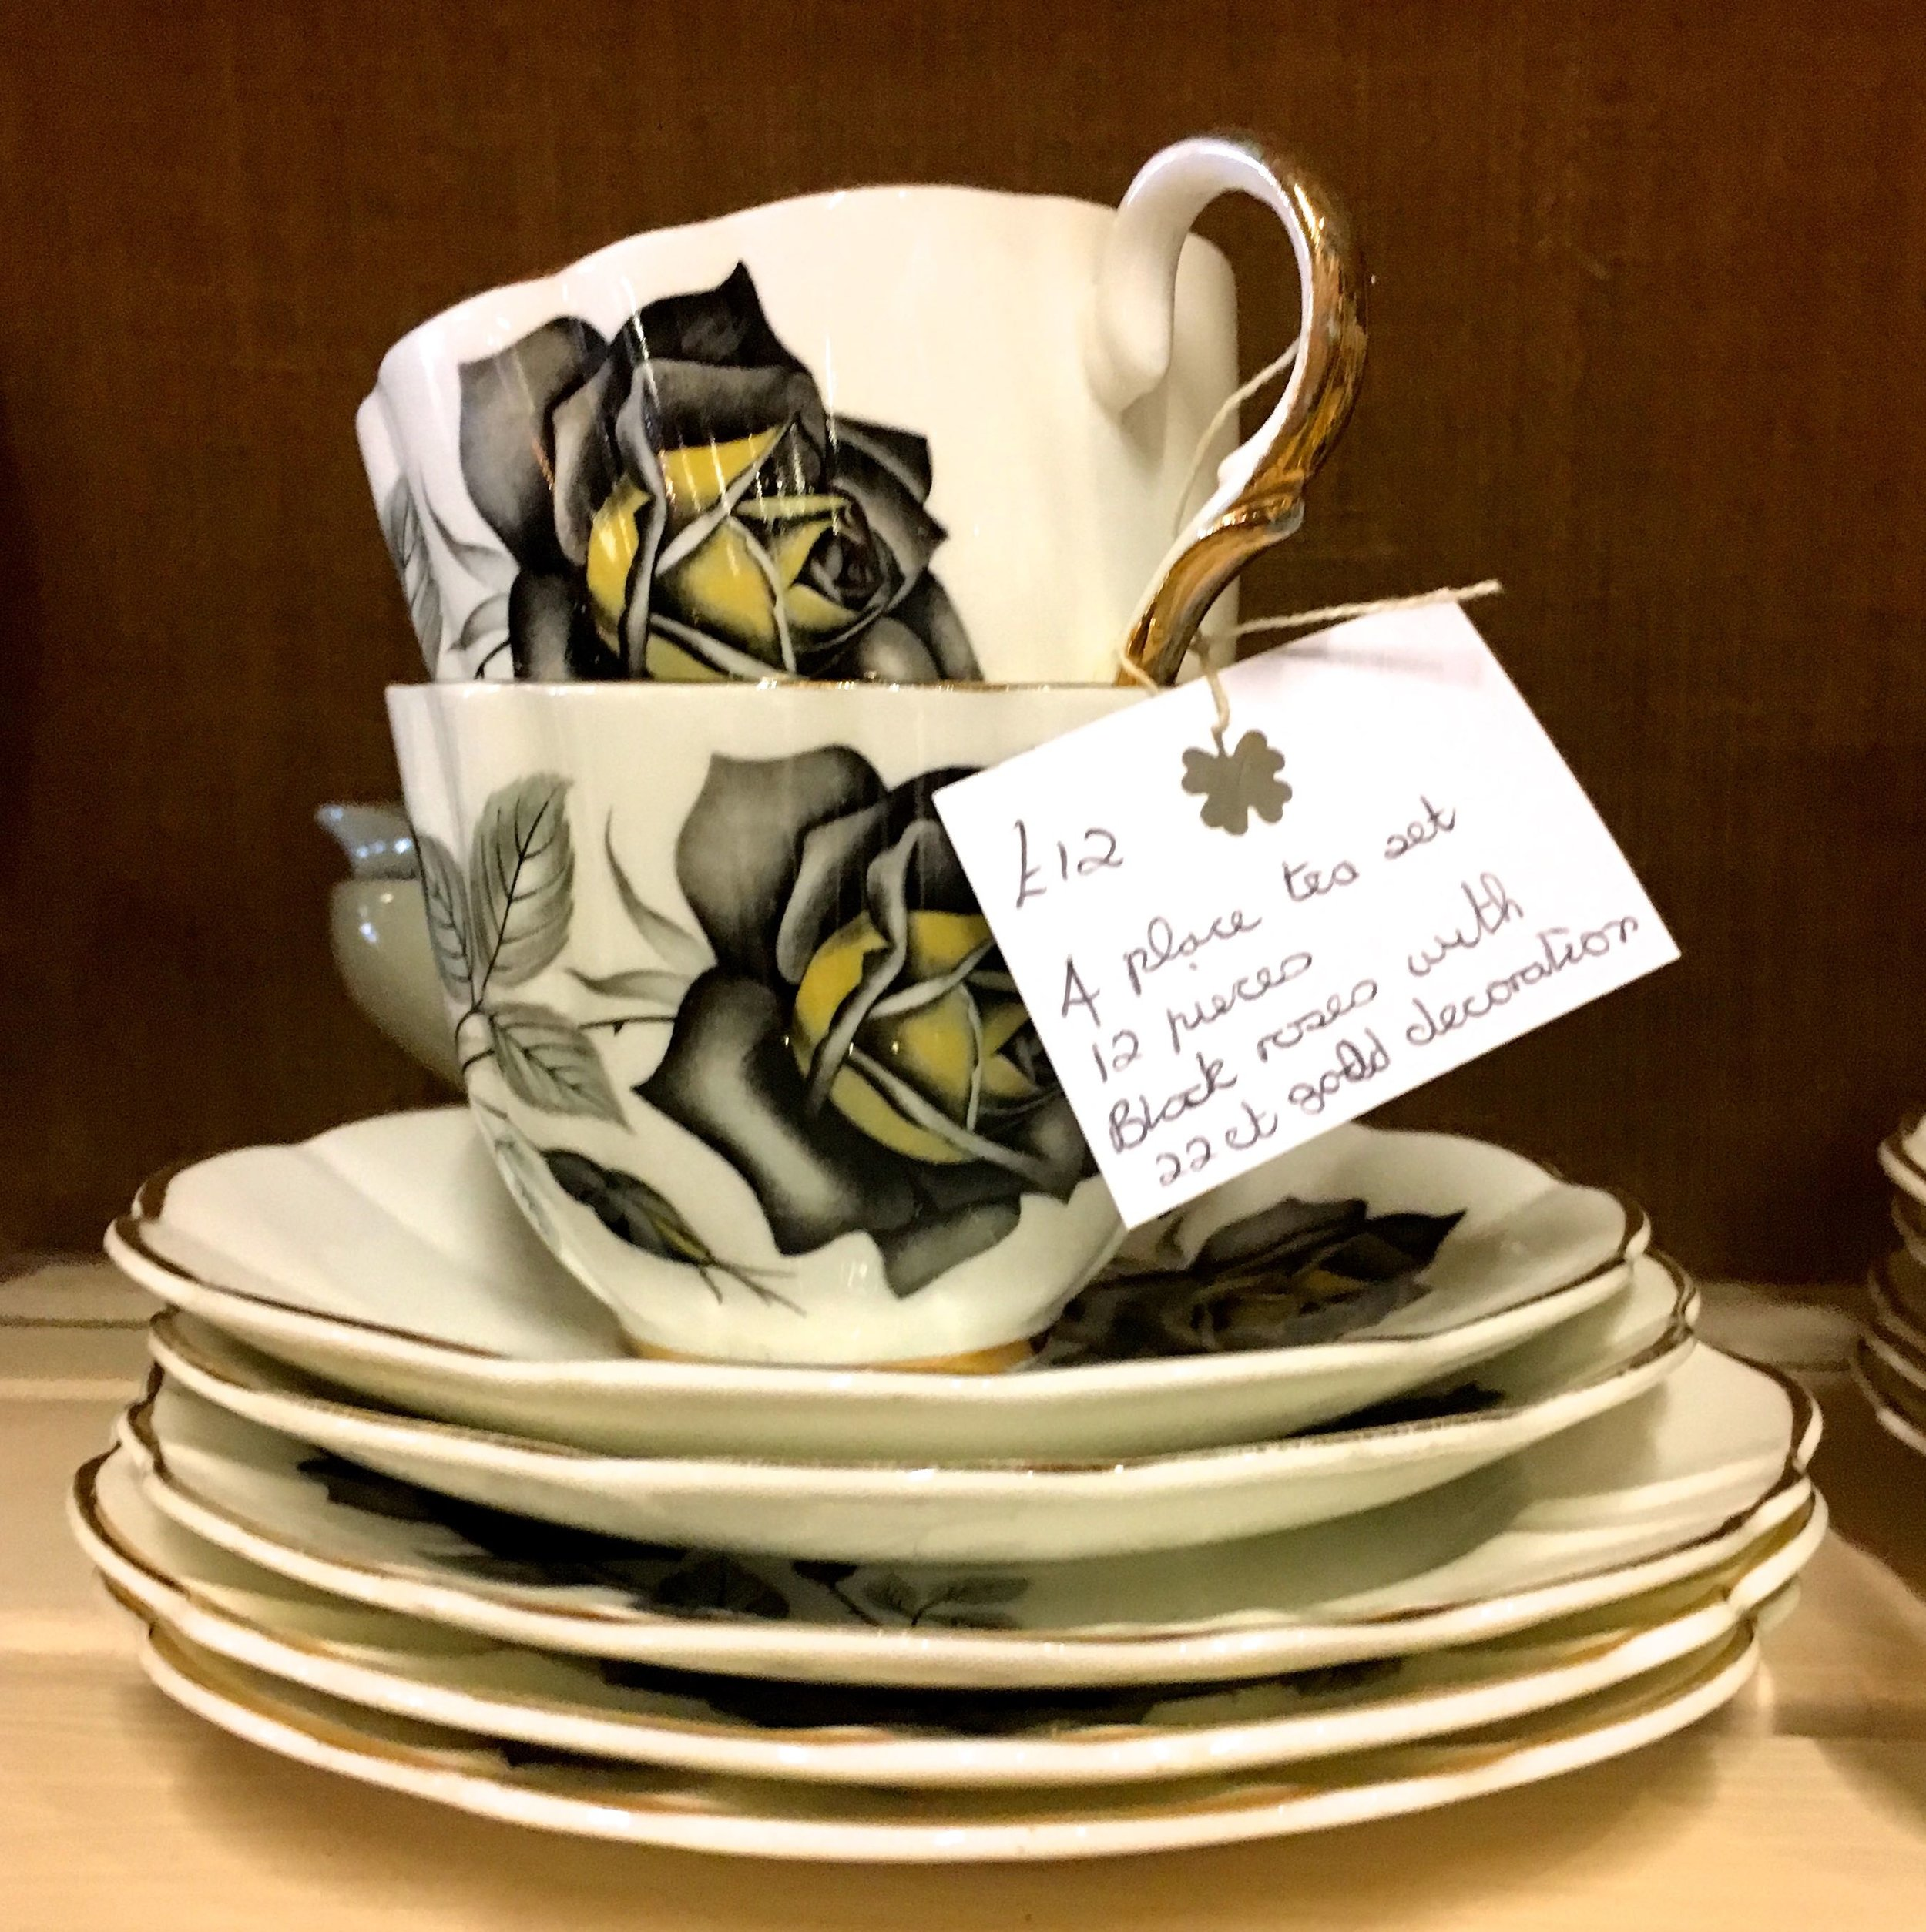 A stack of china with a black rose